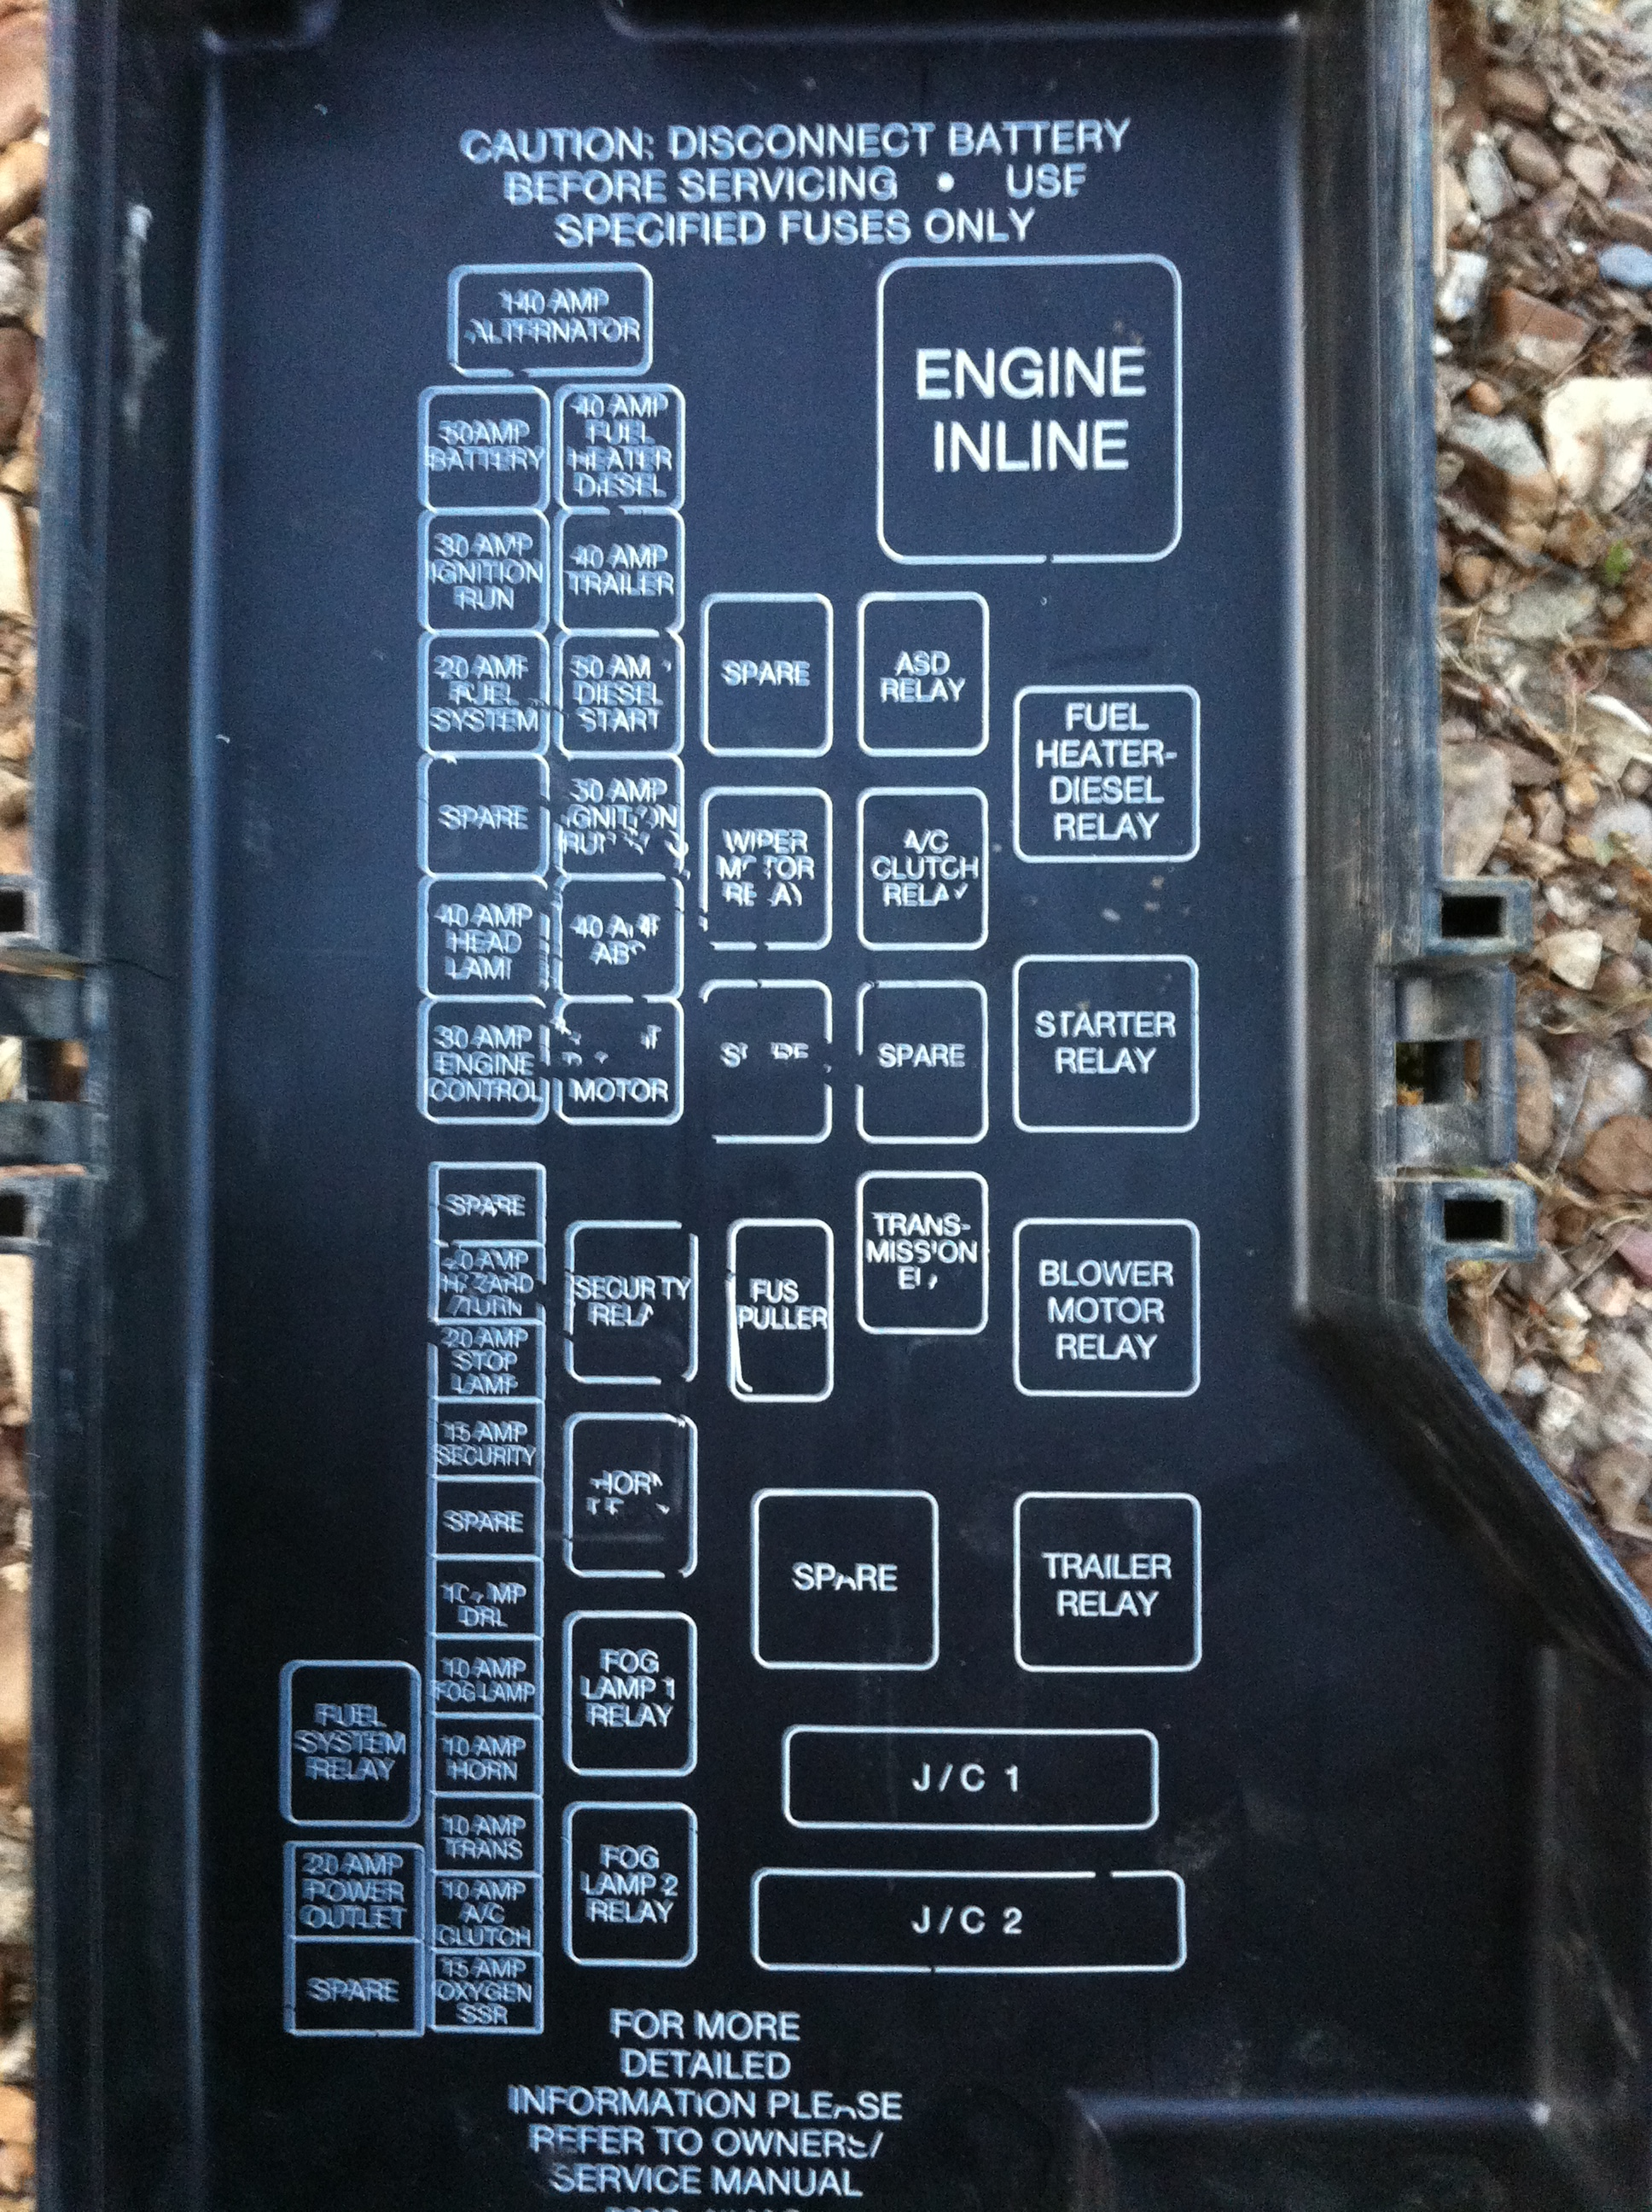 Dodge Truck Fuse Box Private Sharing About Wiring Diagram 1970 Charger Block I Have A 98 Ram 2500 With Cummins Engine When Turn The Key To Rh Justanswer Com 2006